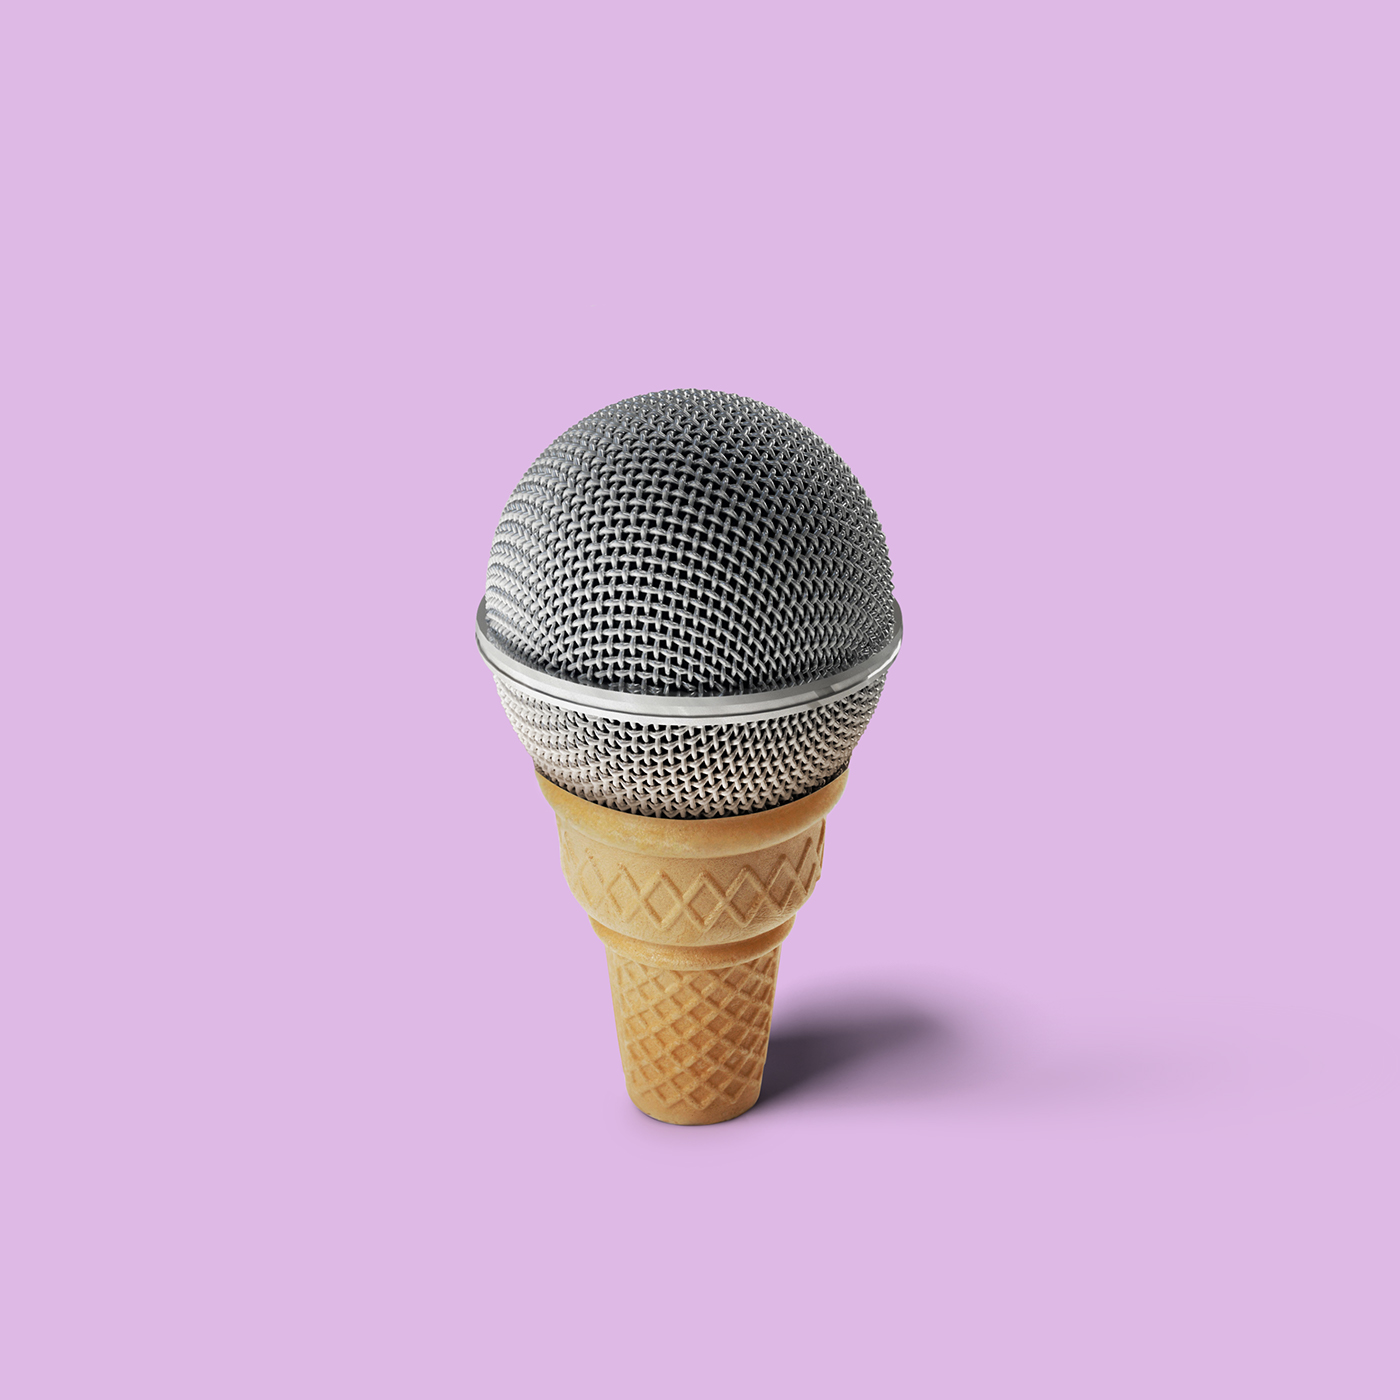 microphone photo montage photoshop by mohamed el nagdy